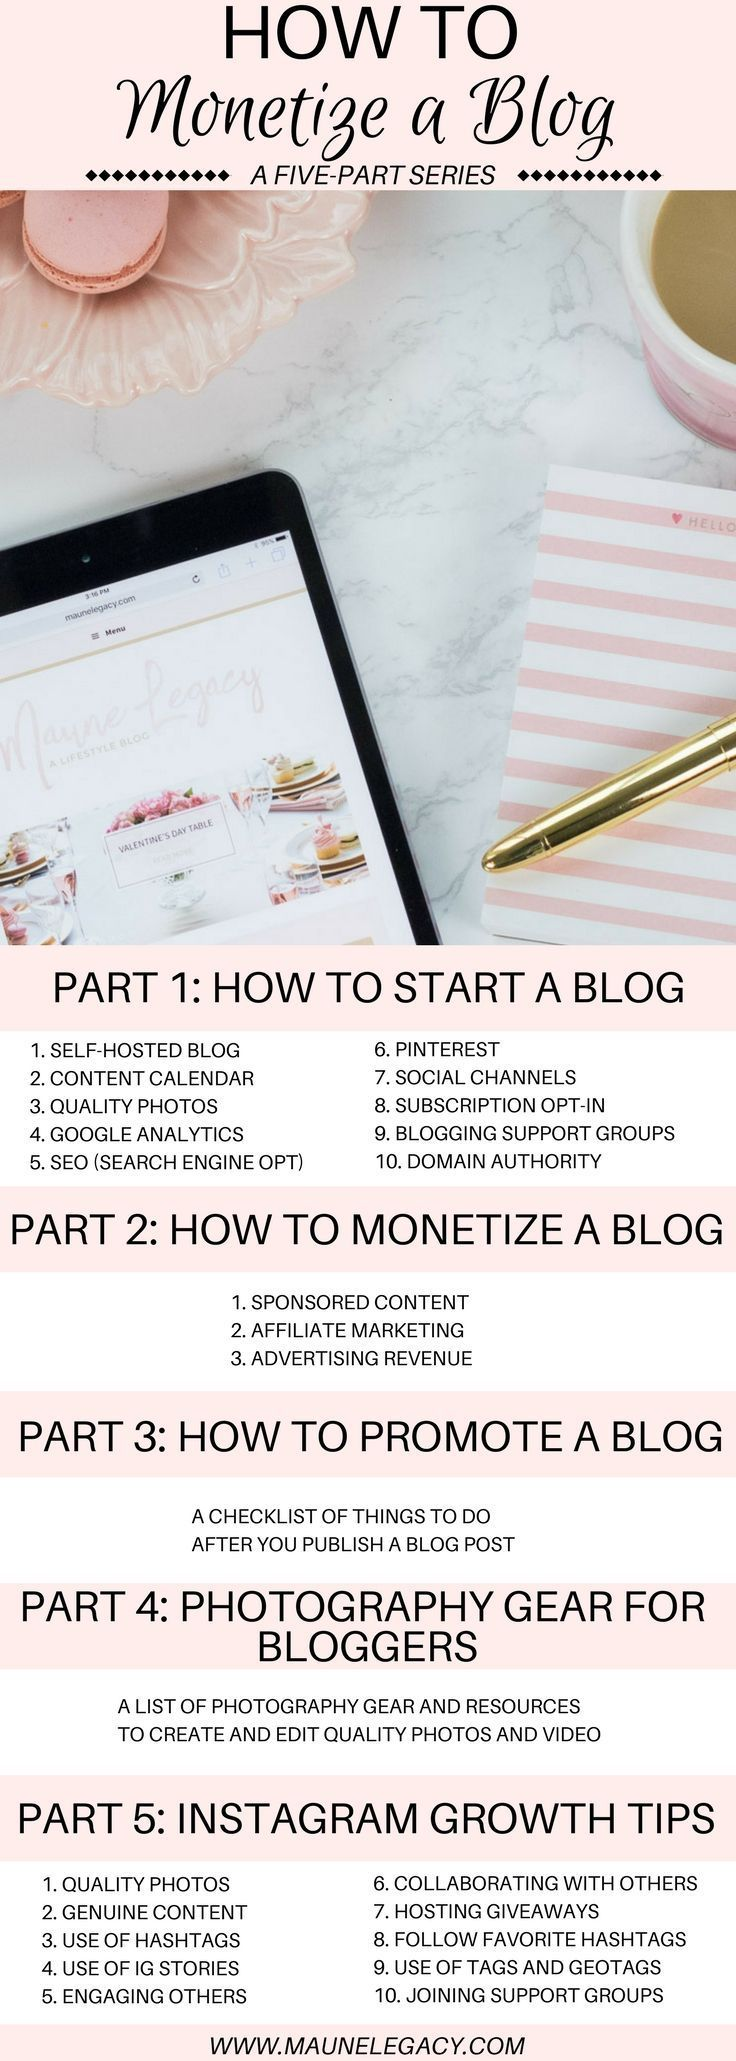 This five-part series on how to monetize a blog includes 3 action steps for earning through your blog including sponsored content, affiliate marketing, and advertising.